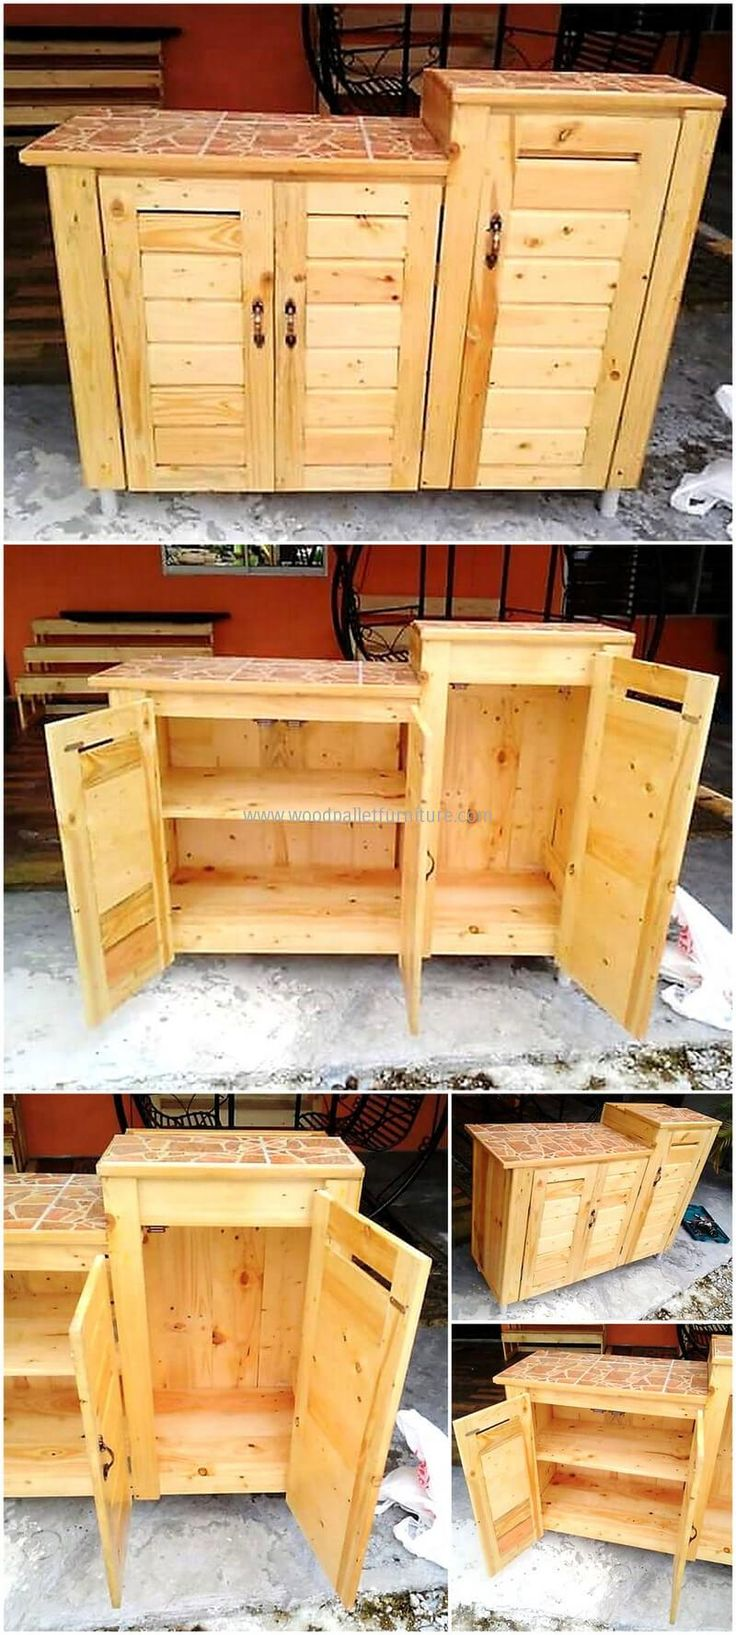 Some Different Ideas with Used Pallets